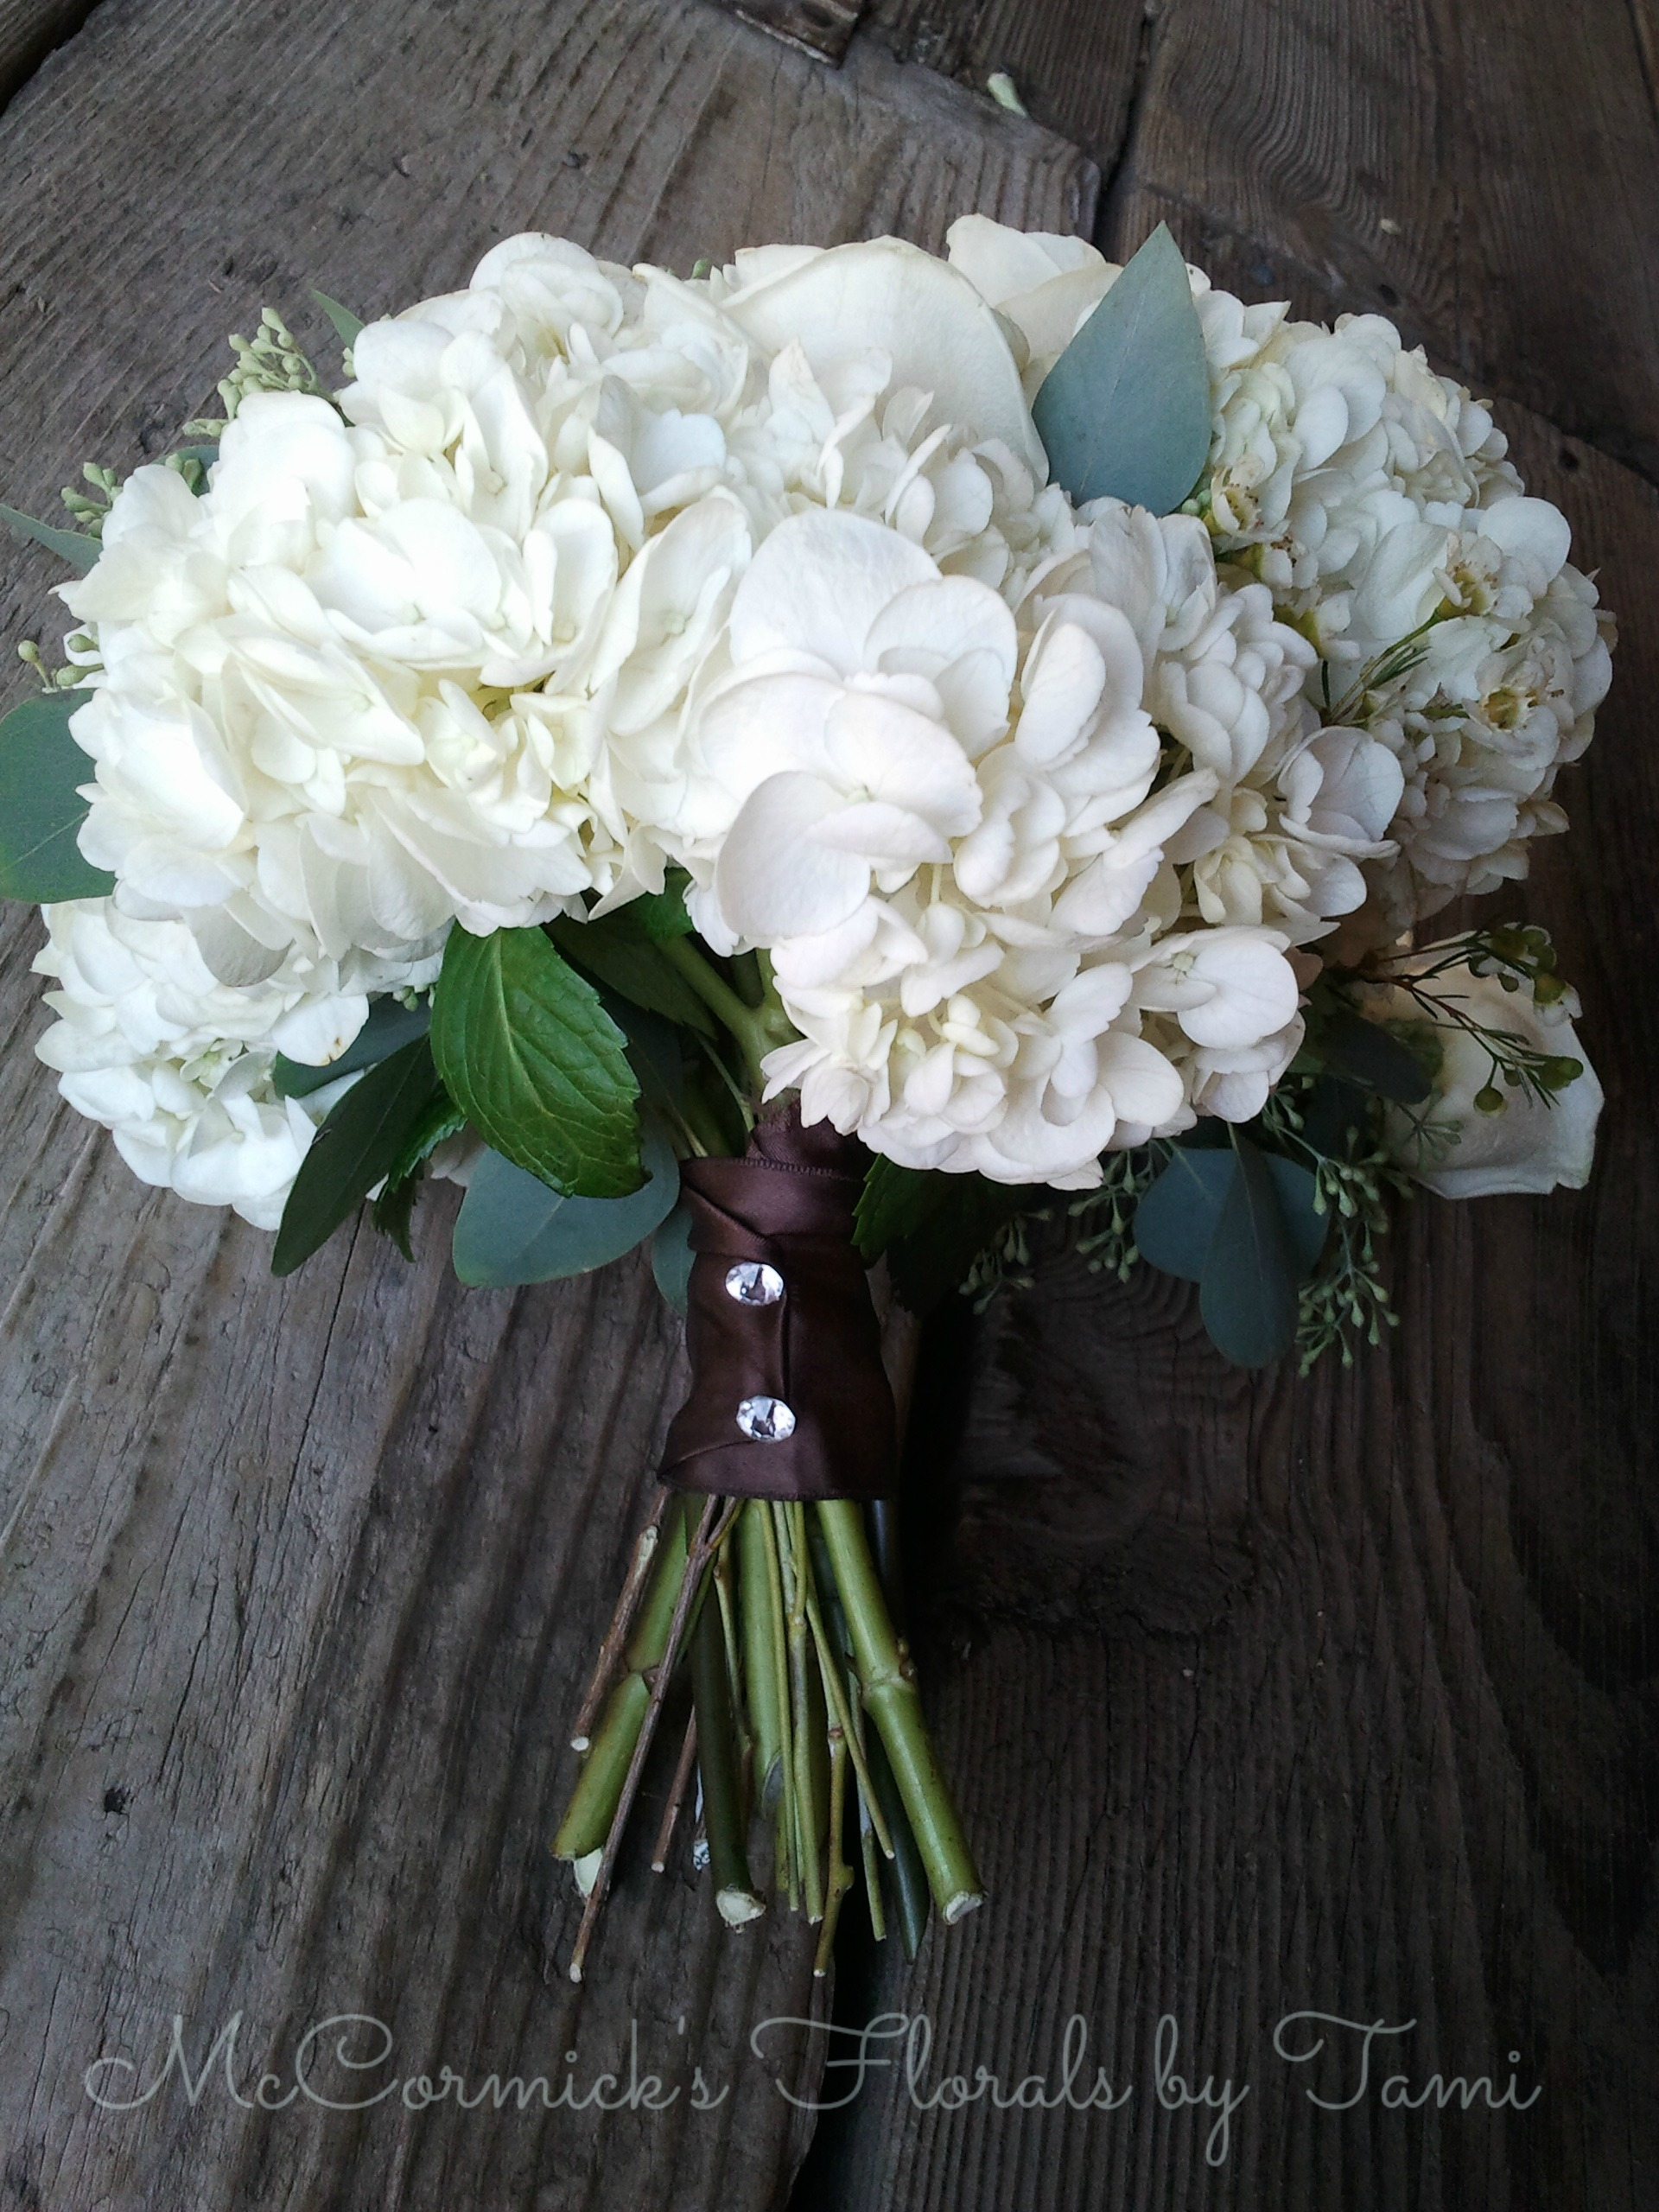 Diy bride hydrangea know how mccormick s florals by tami